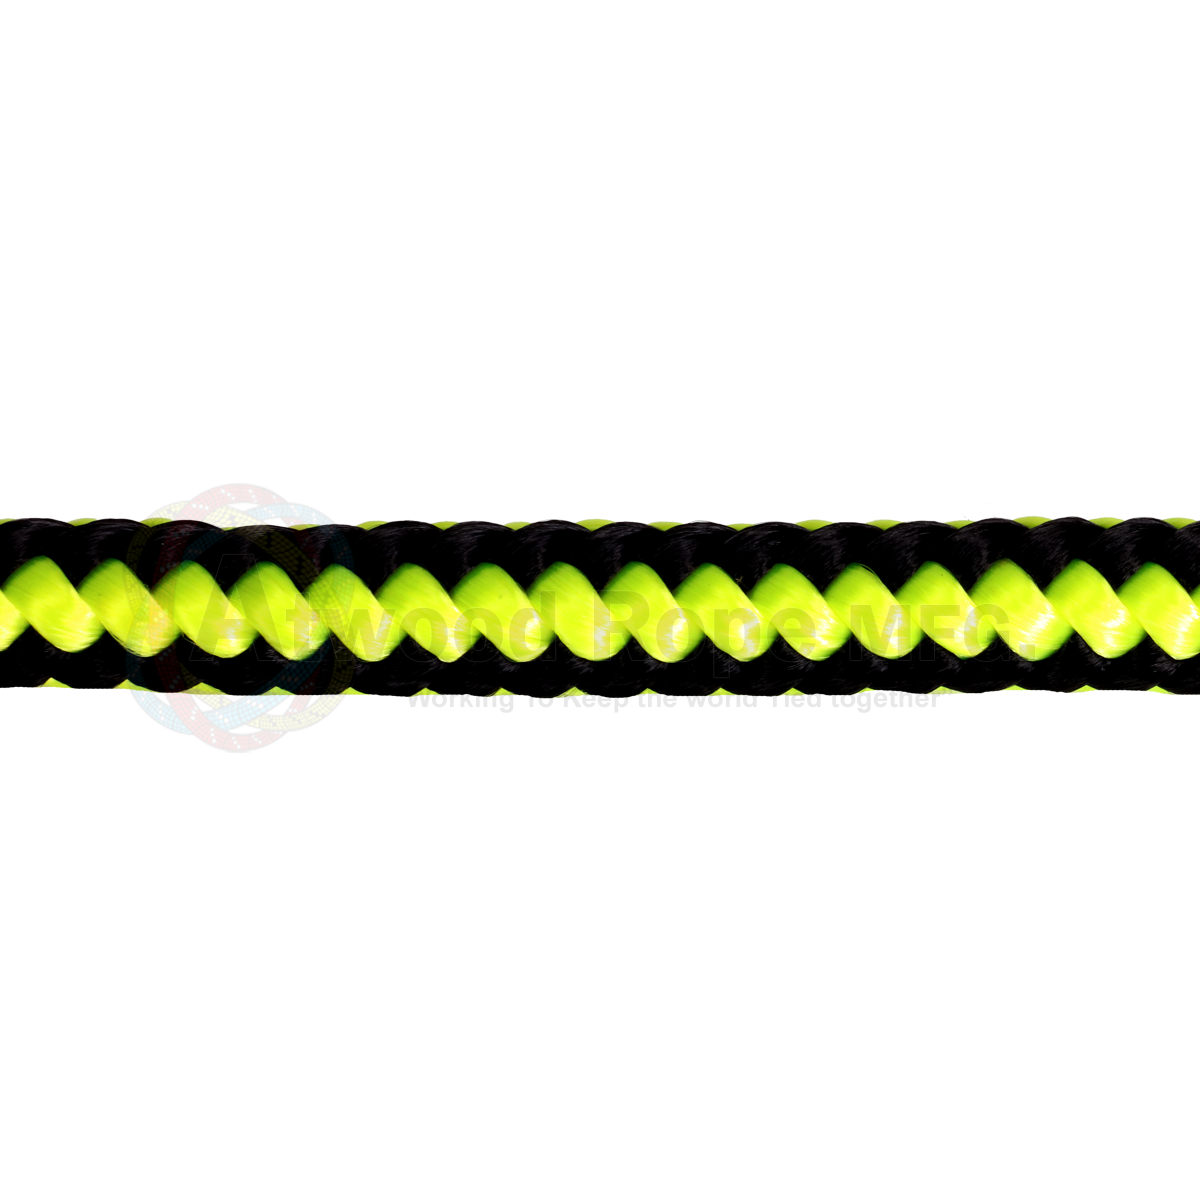 1/2 x 150ft Arborist Rope - Neon Yellow & Black